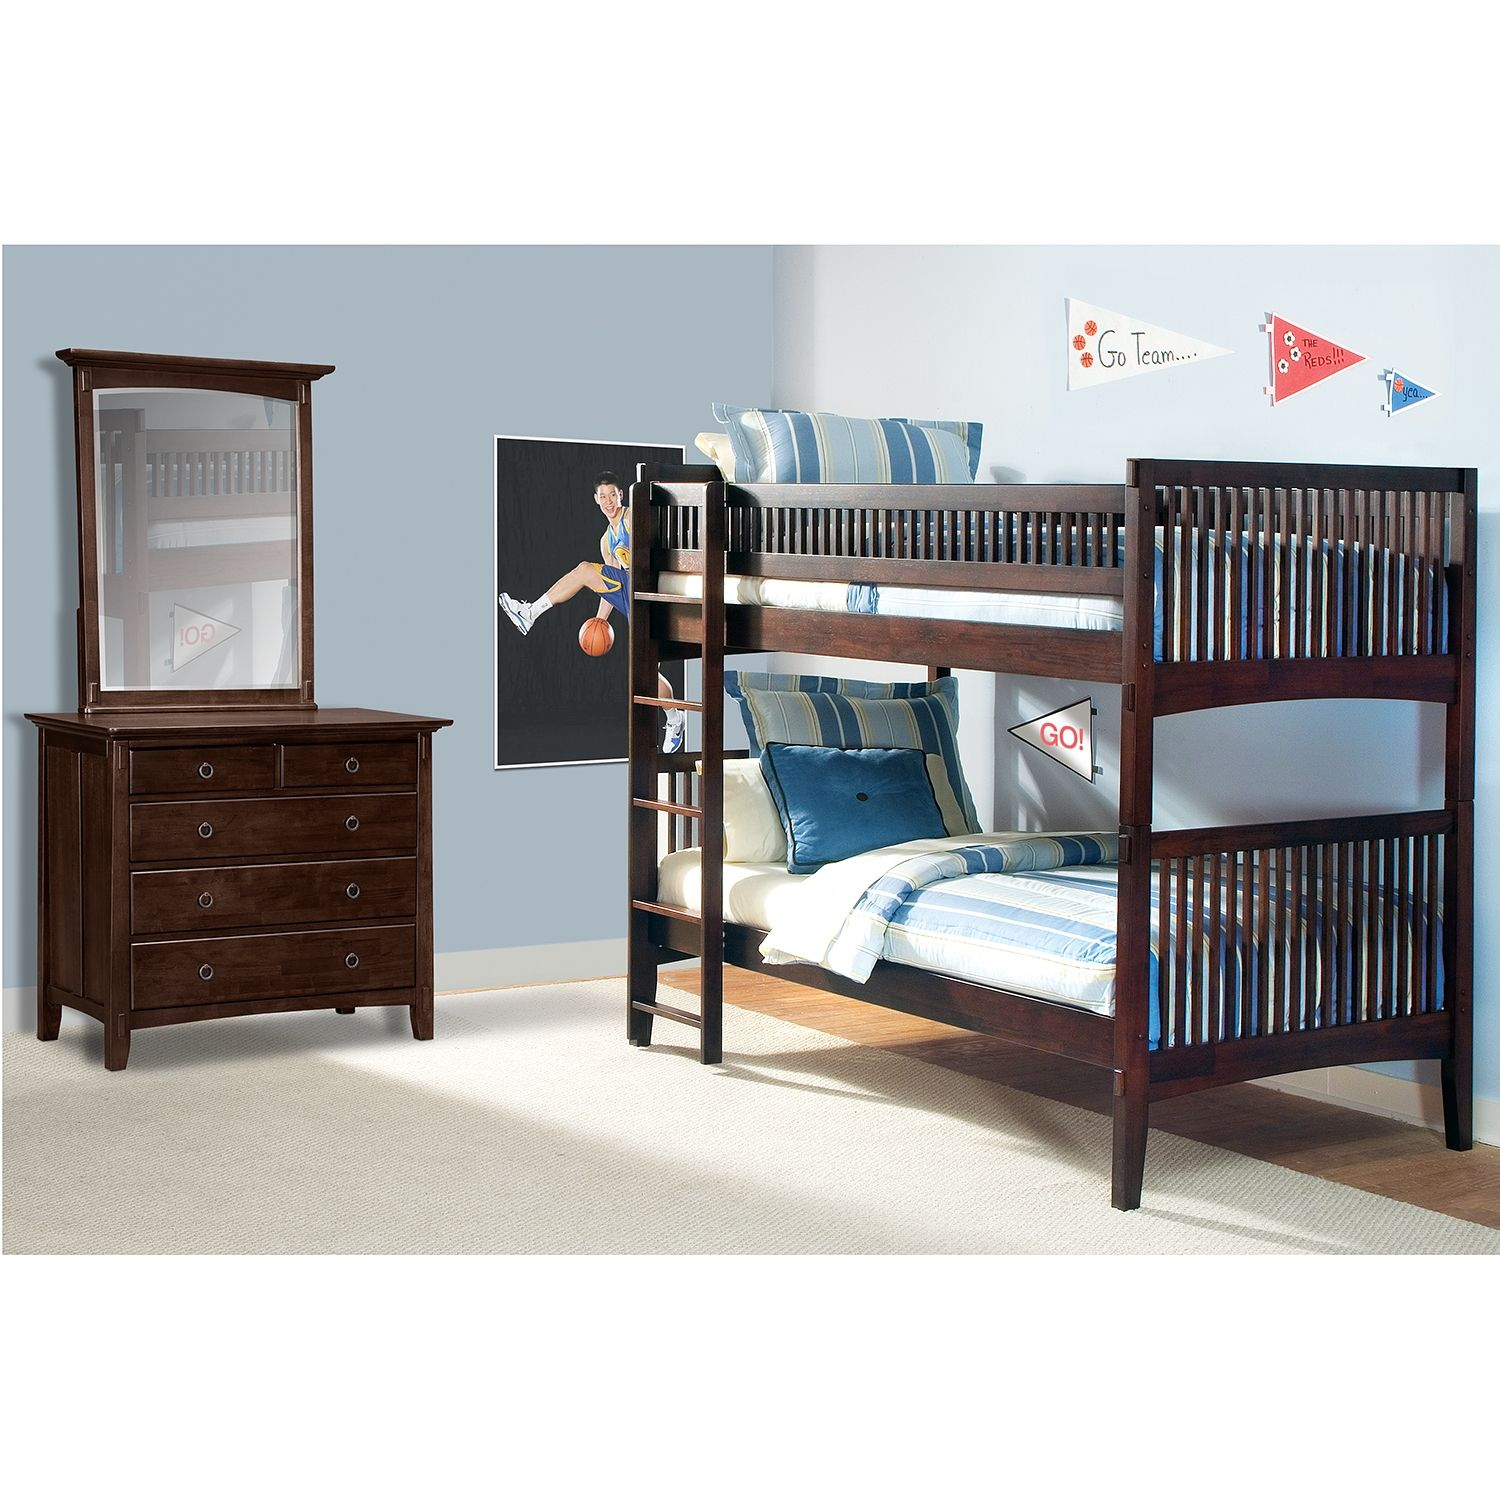 Arts Crafts Dark Iii Twin Bunk Bed American Signature Furniture